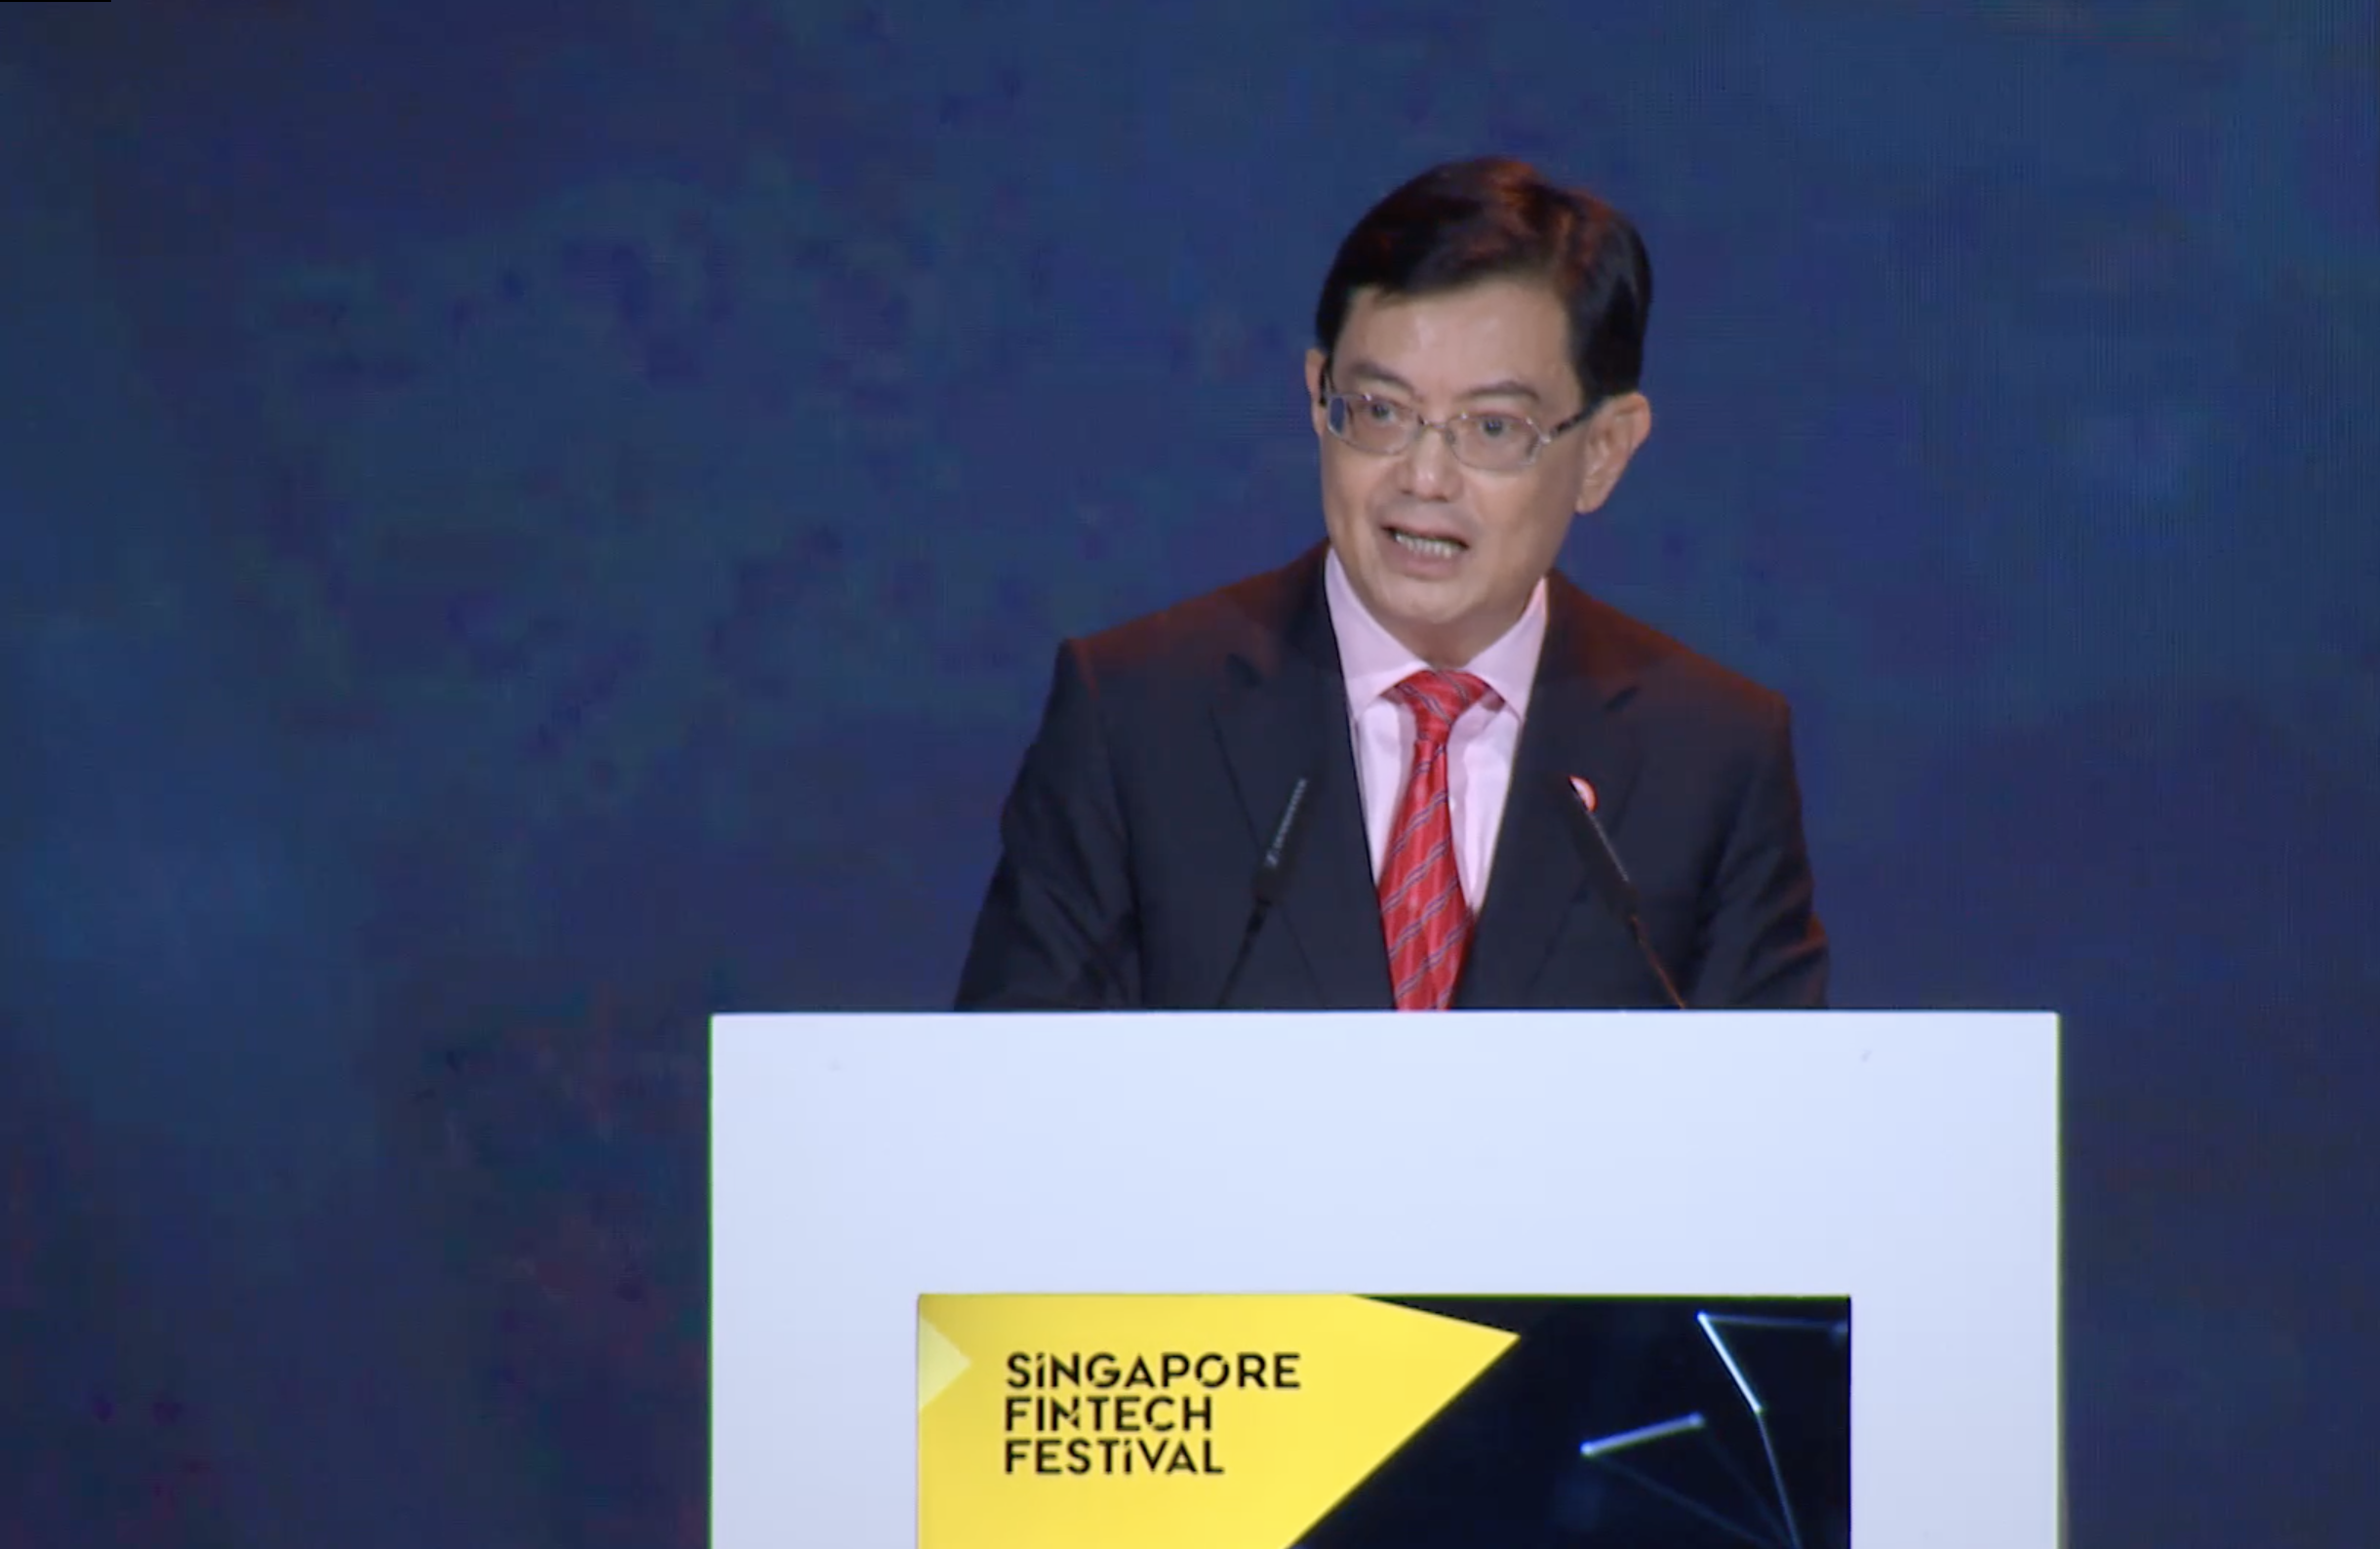 Deputy Prime Minister Heng Swee Keat announced the launch of the Open Innovation Network (OIN) at the Singapore Fintech Festival x Singapore Week of Innovation and TeCHnoloy (SFF x SWITCH). Photo courtesy: IMDA